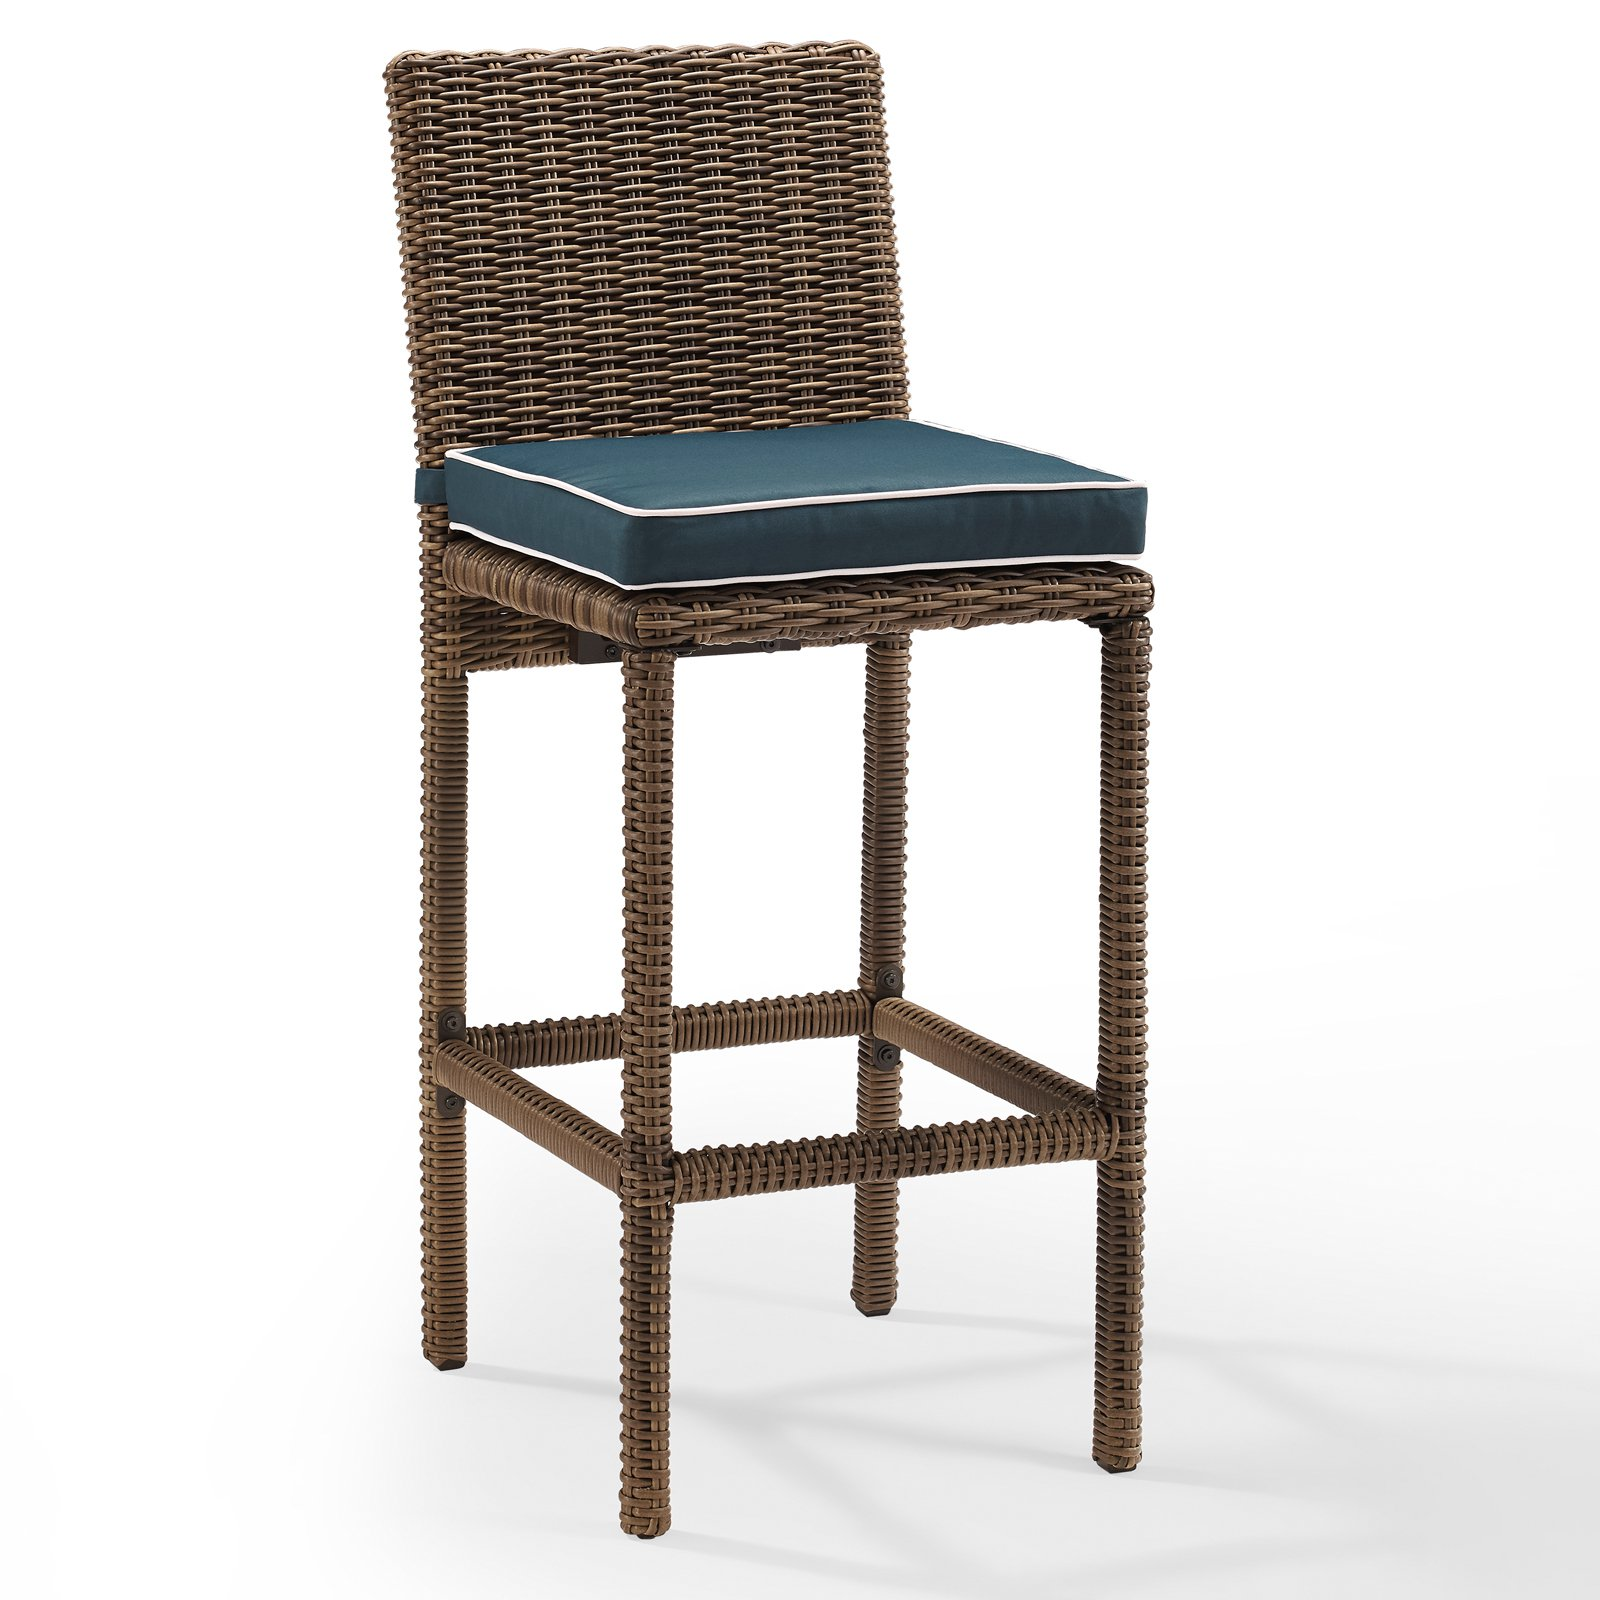 Crosley Furniture Bradenton Outdoor Wicker Bar Height Stools (Set of 2) with Navy Cushions